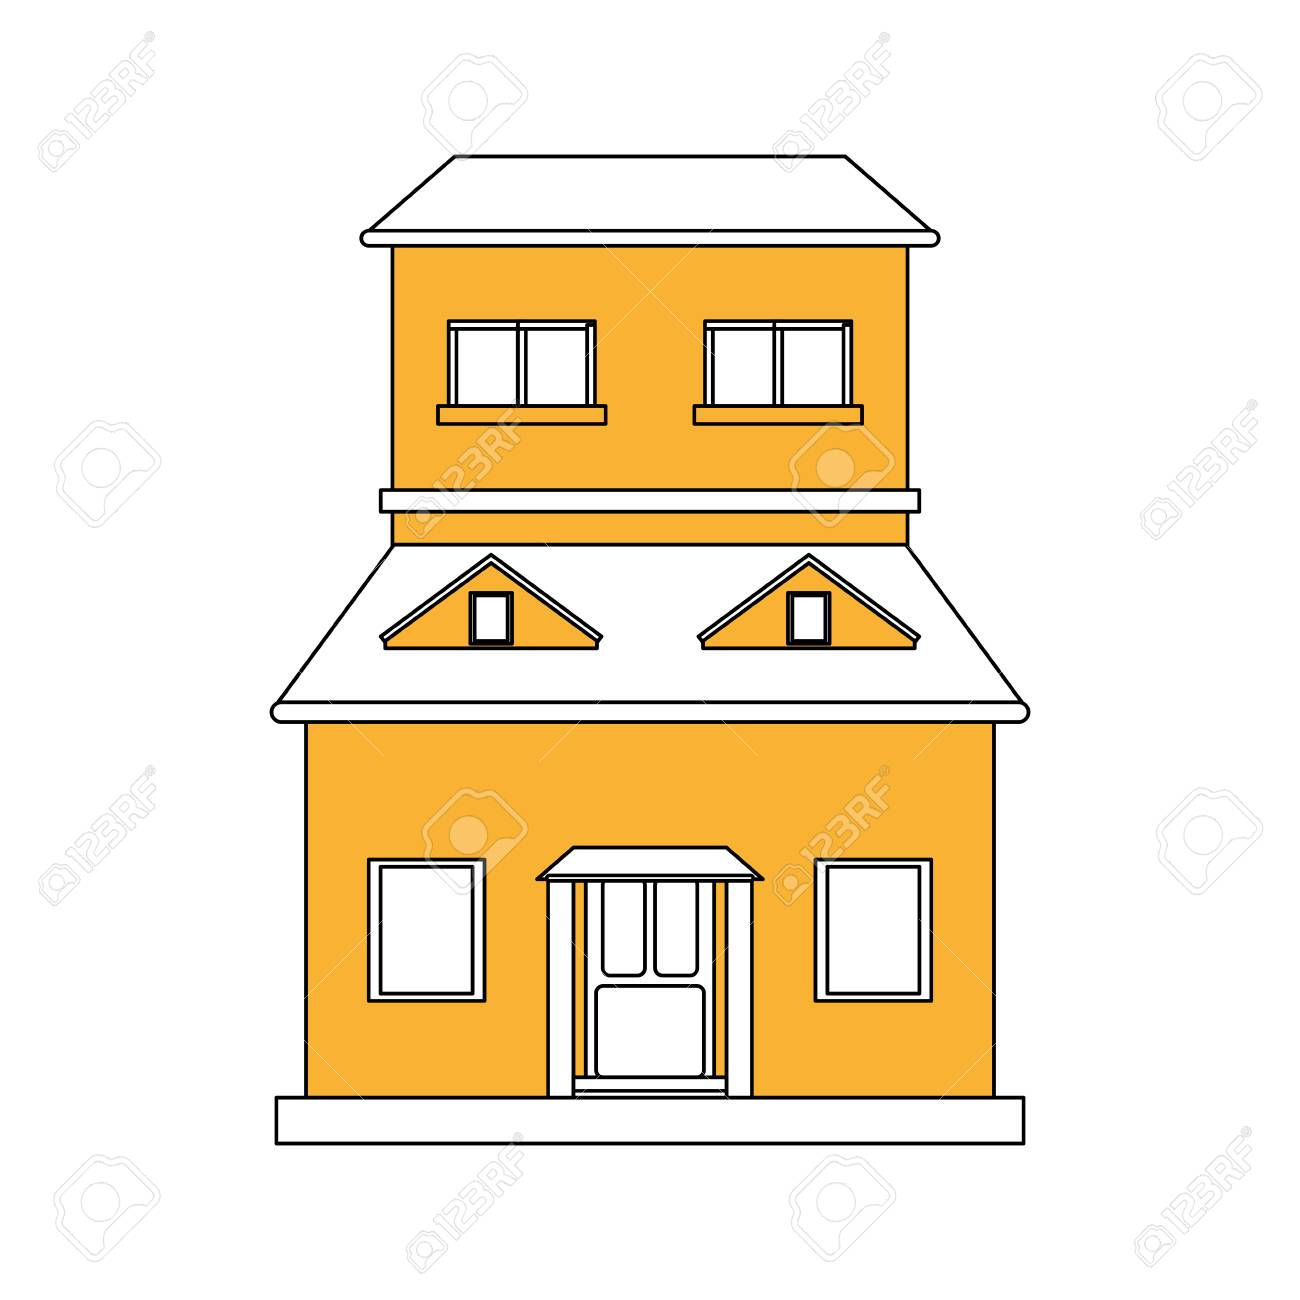 color silhouette cartoon yellow facade structure house with two floors and attic vector illustration Stock Vector  sc 1 st  123RF.com & Color Silhouette Cartoon Yellow Facade Structure House With Two ...